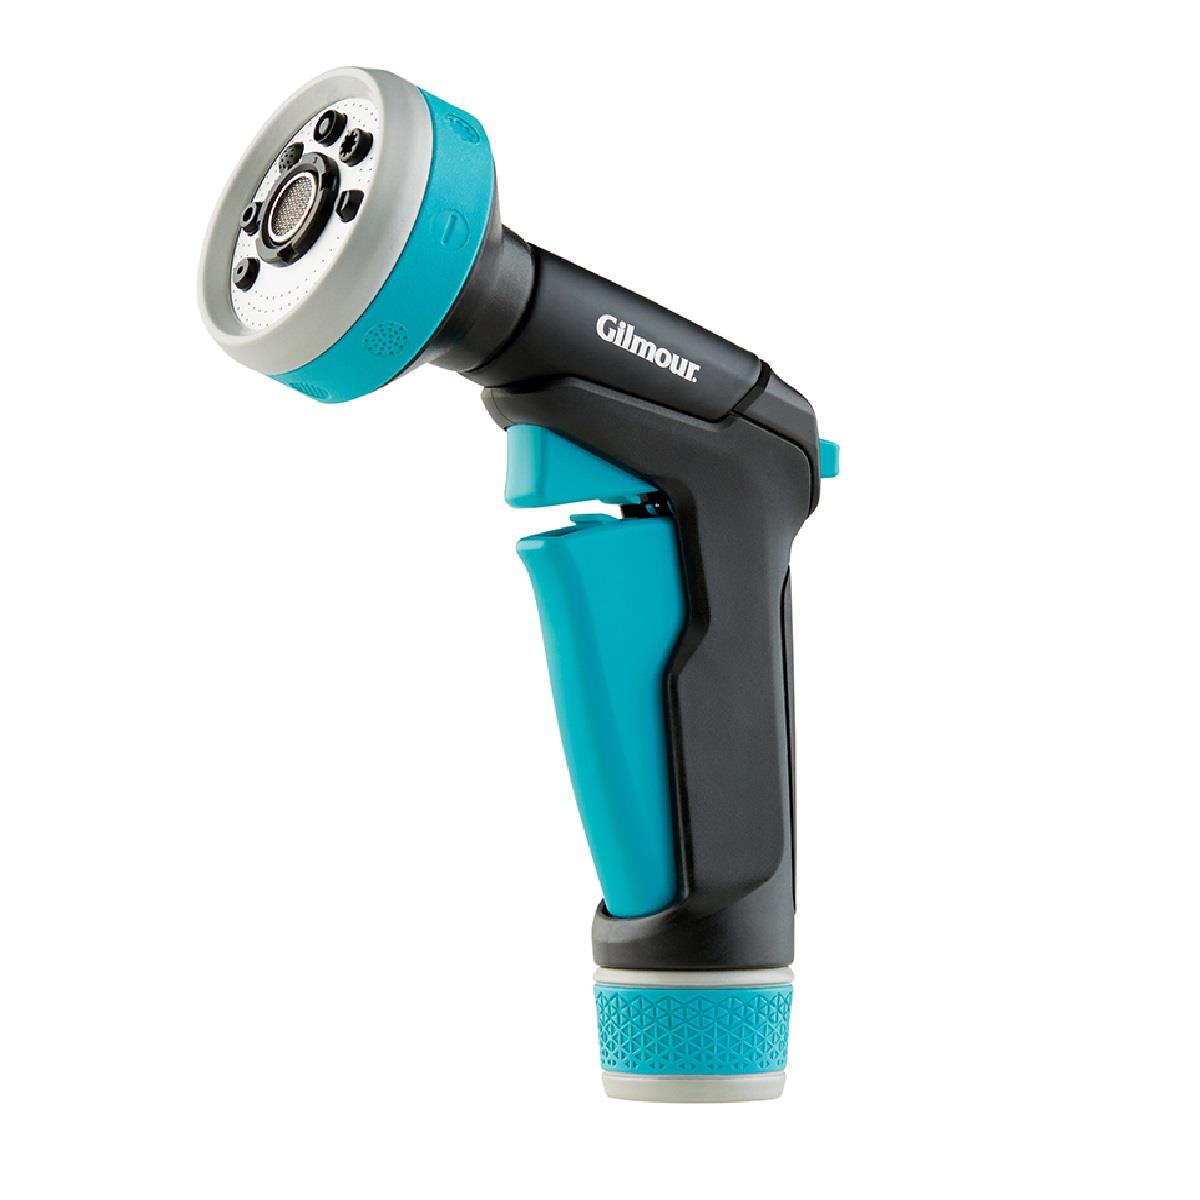 Watering Heavy Duty Front Trigger Nozzle